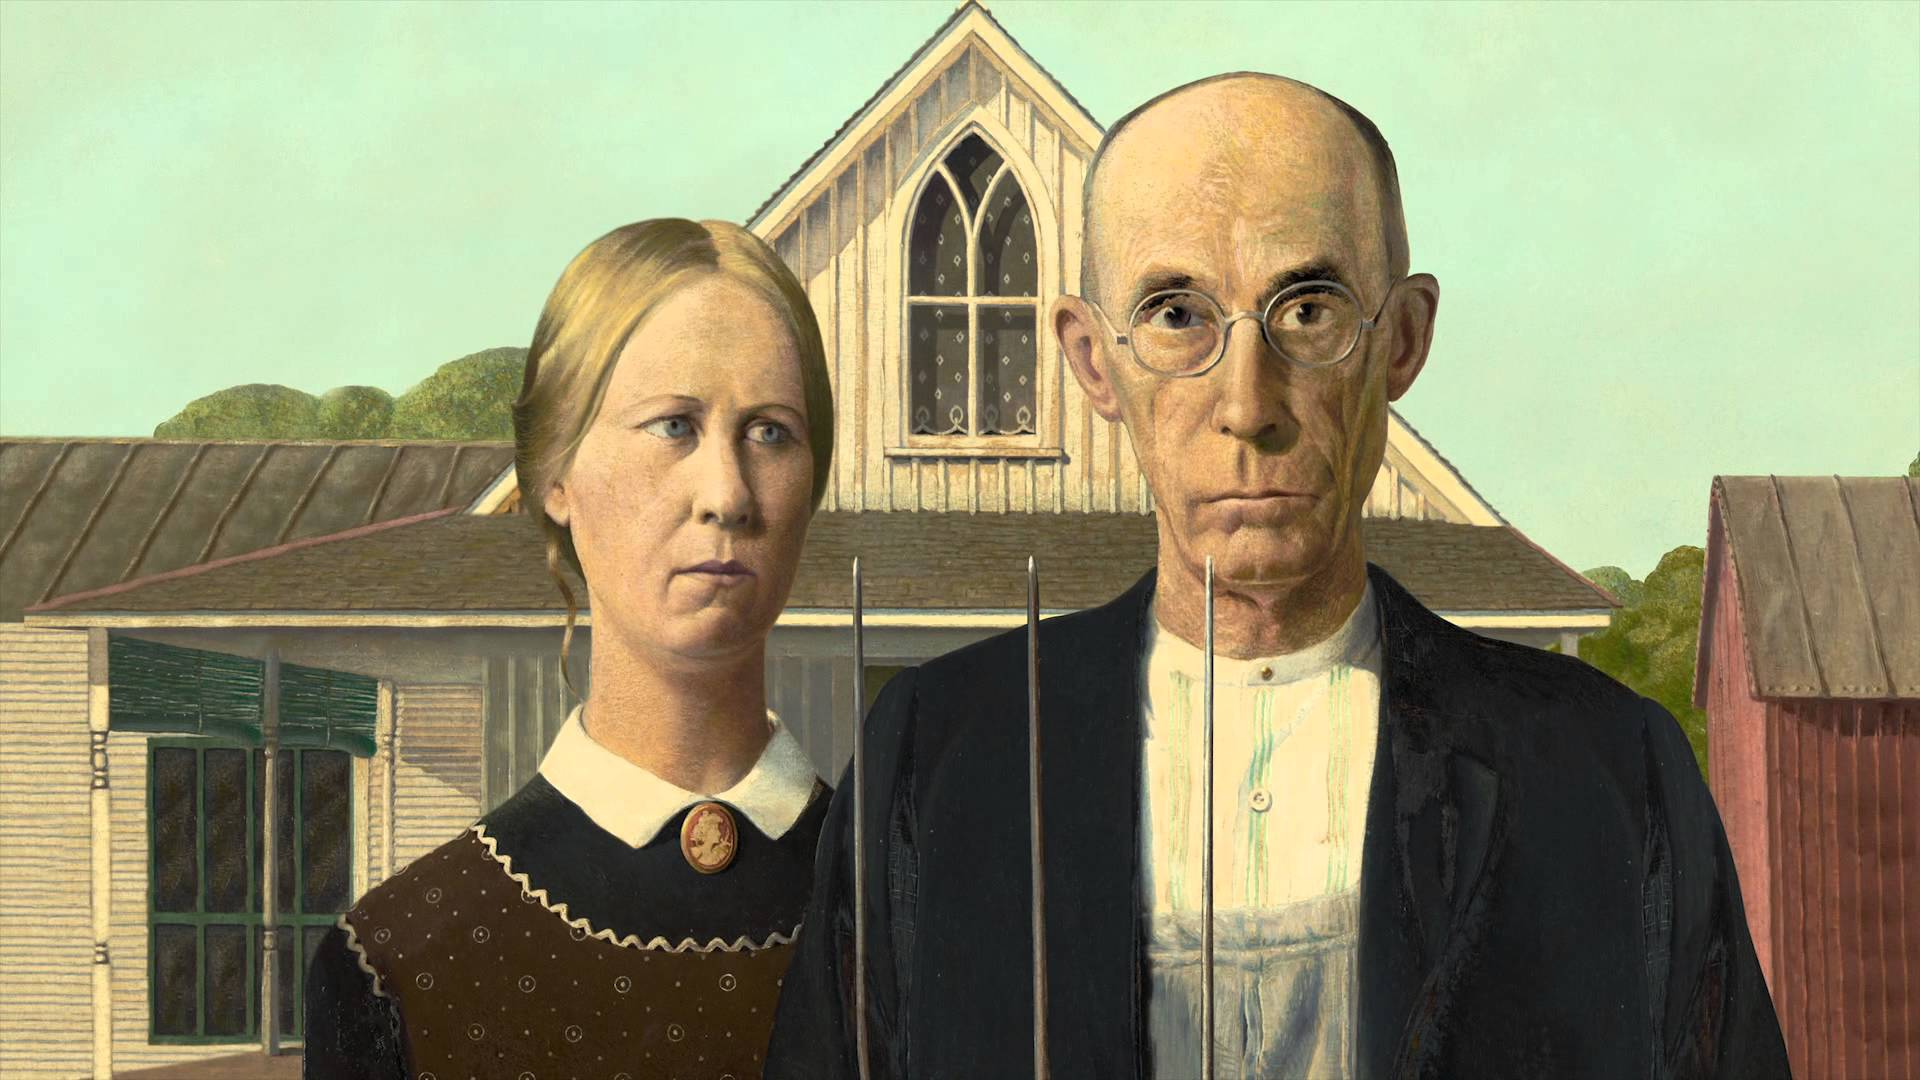 grant wood and the american gothic Grant wood (1891-1942) is best-known for his painting american gothic, one of the most recognizable portraits in history, but there is much that is unfamiliar about the artist himself.